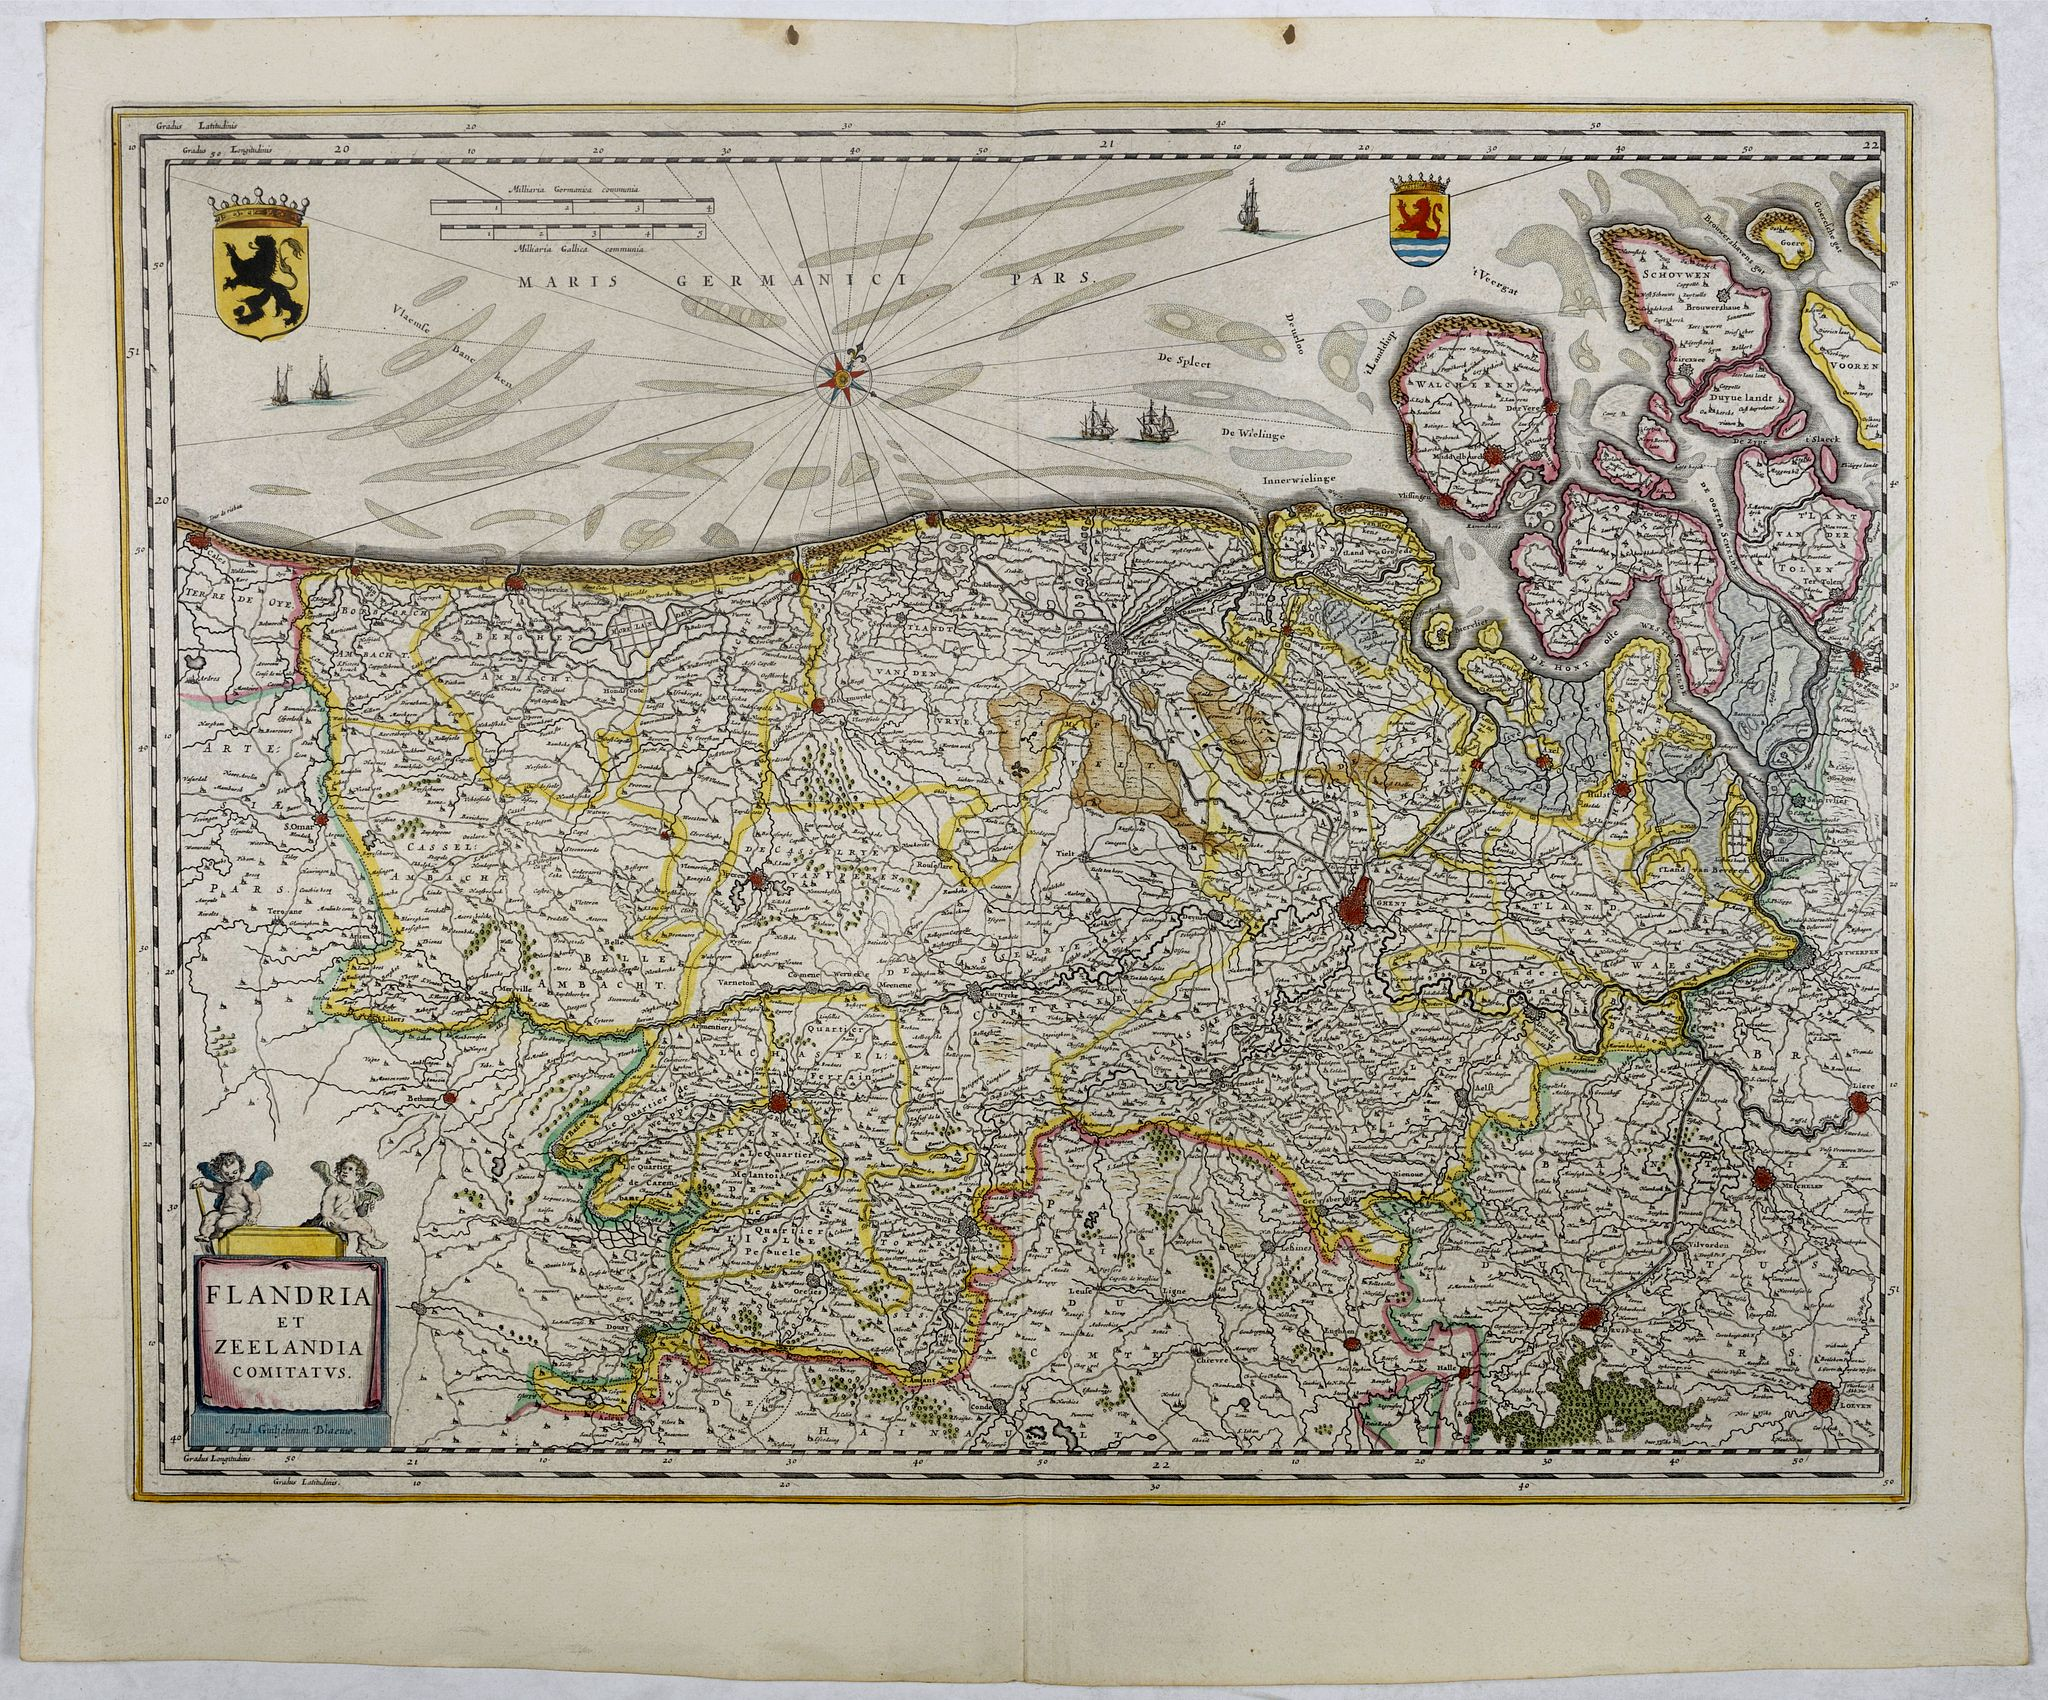 BLAEU, W.,  Flandria et Zeelandia Comitatus., antique map, old maps